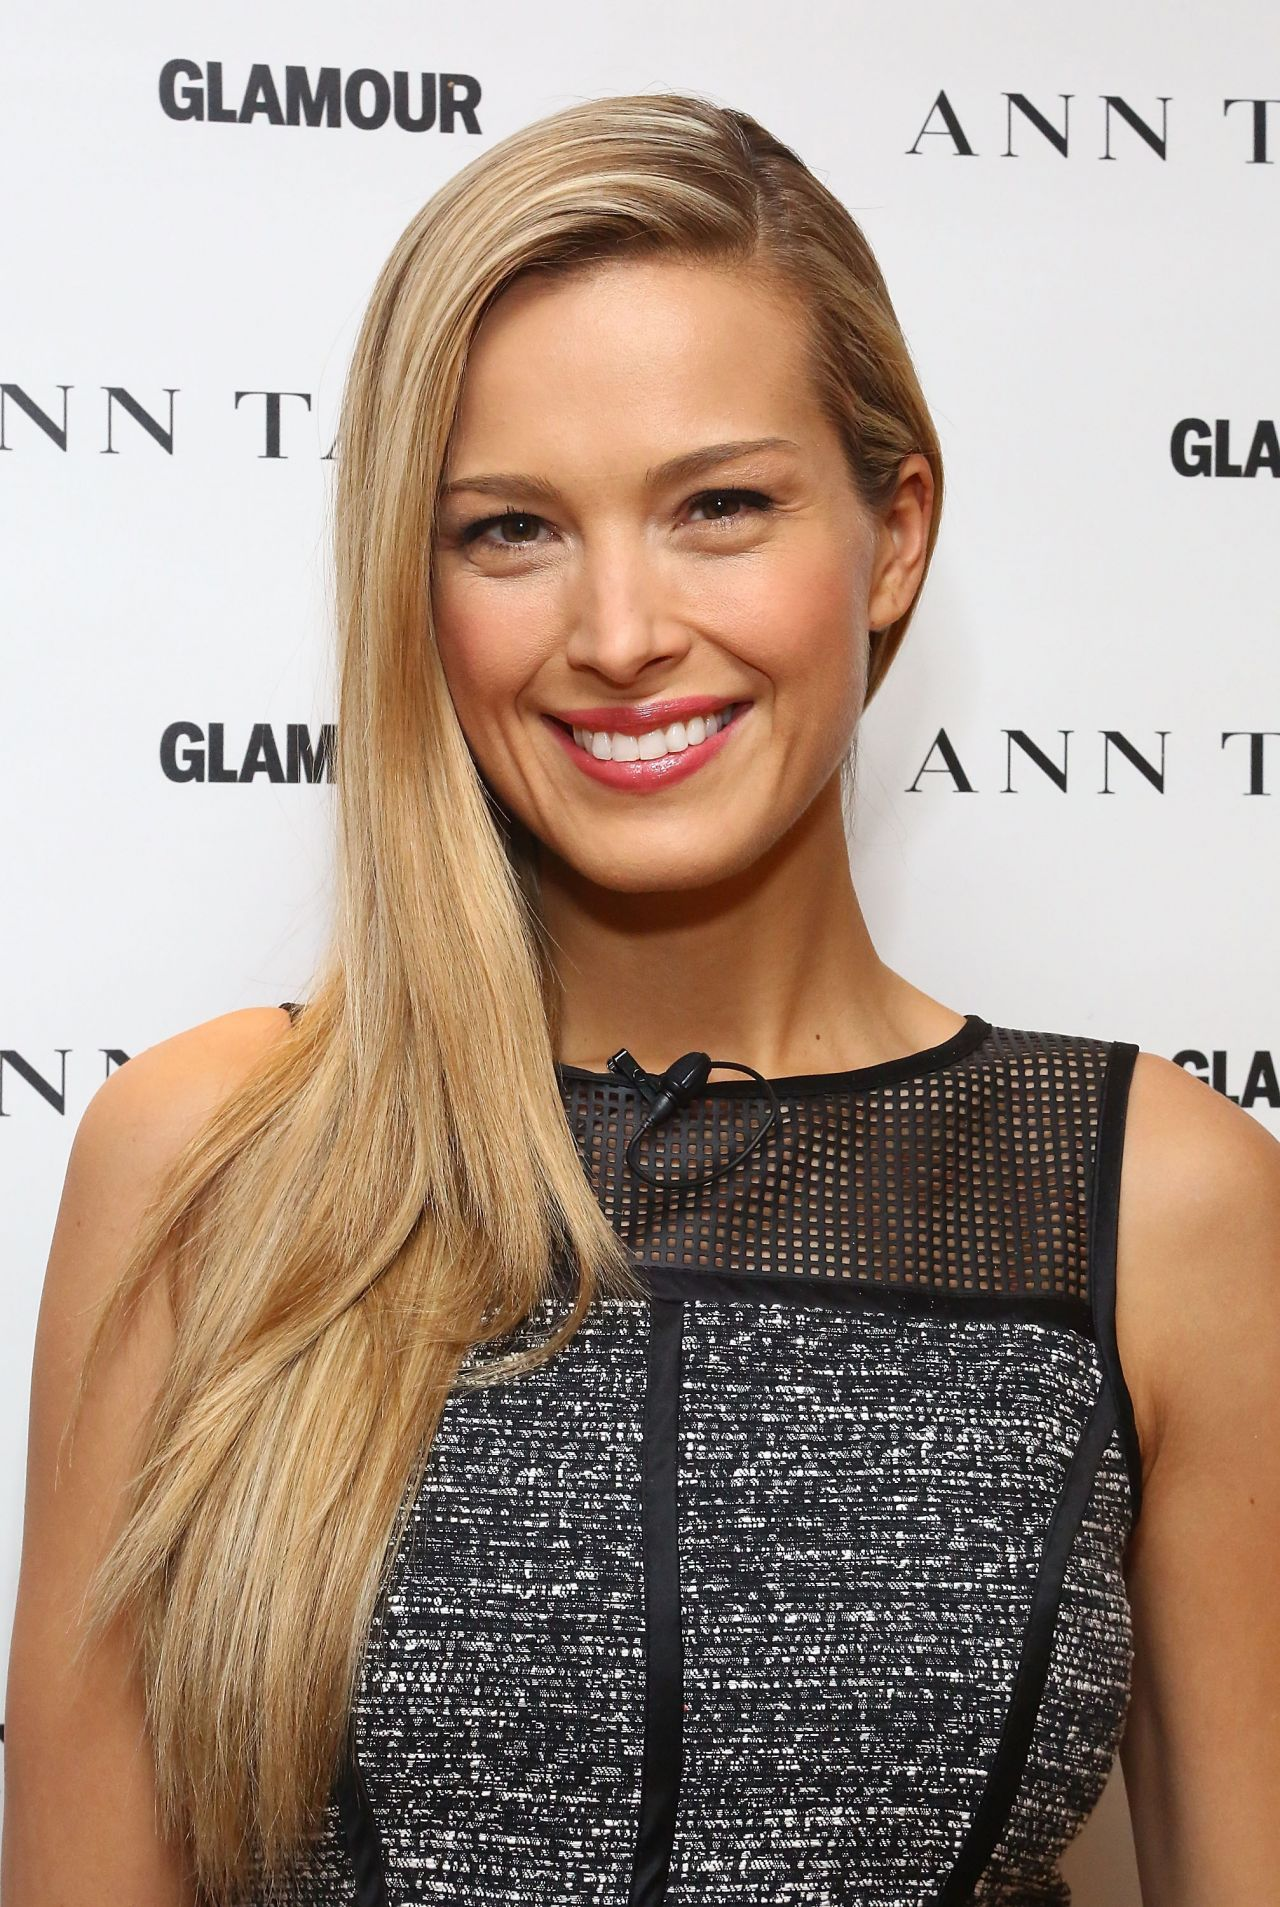 Petra Nemcova - 2014 International Women